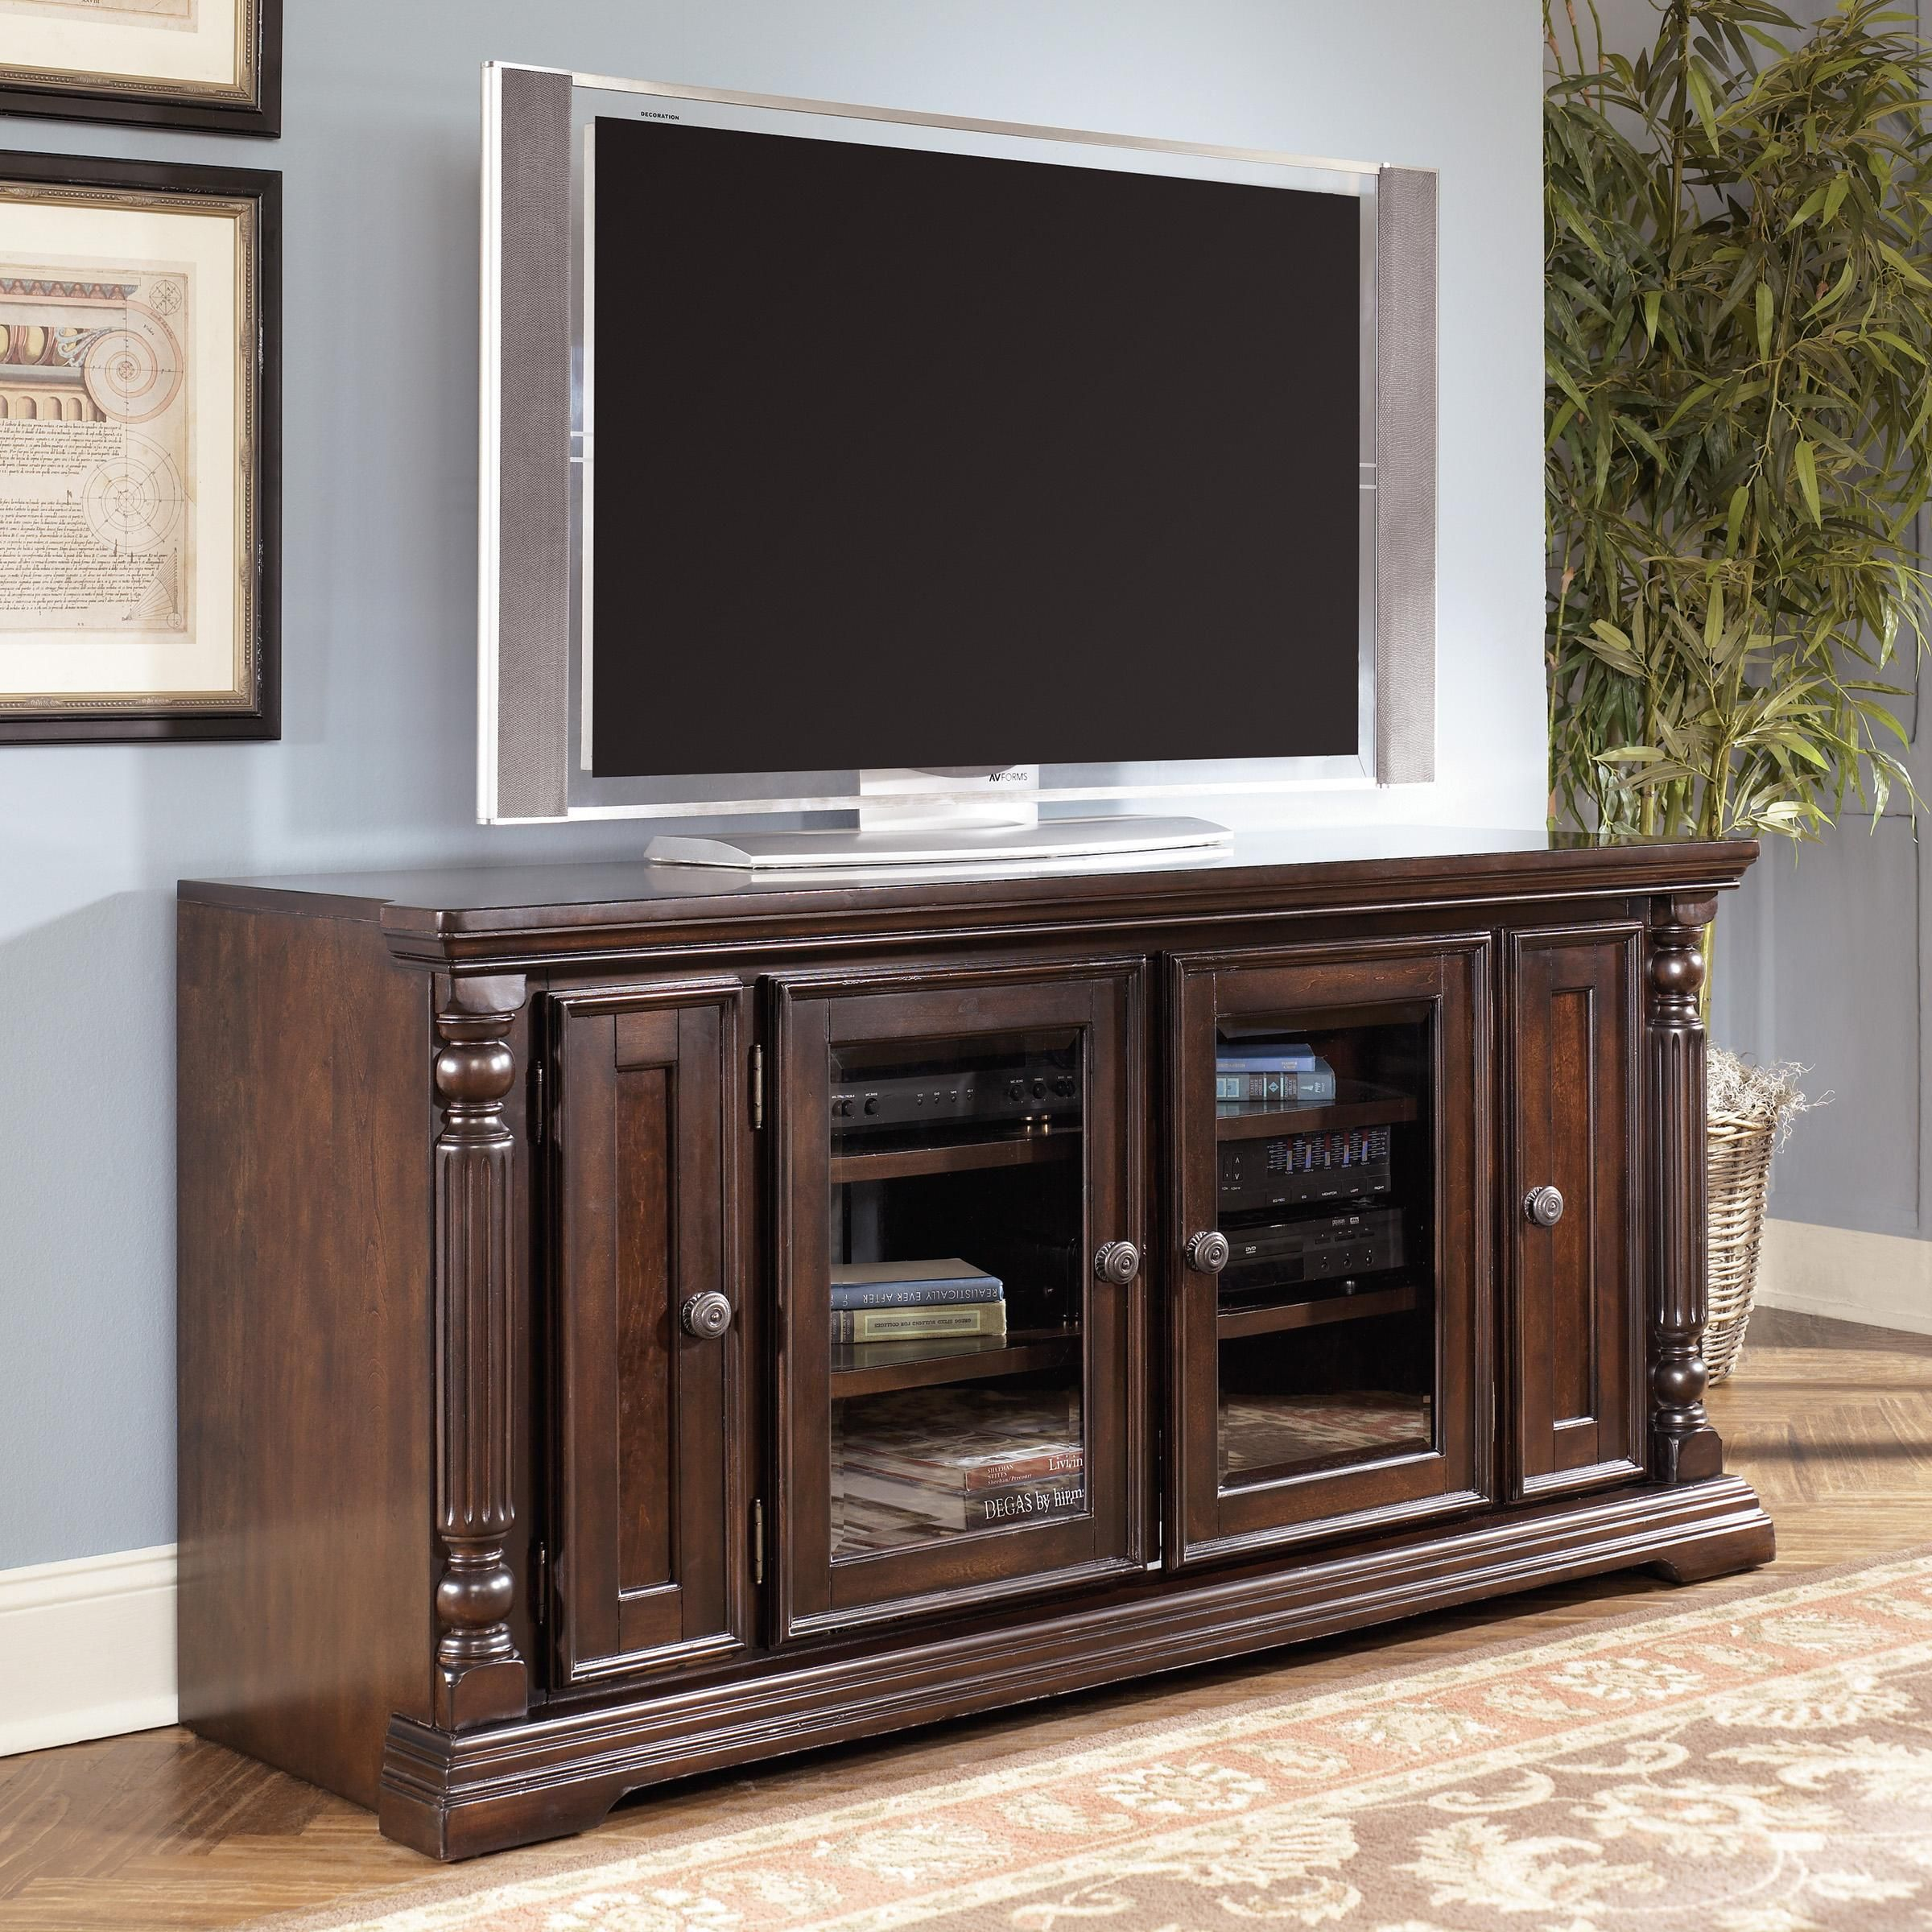 Tall tv stand new home decor dark wood tv stand solid wood tv stand entertainment center for Tall tv stands for living room